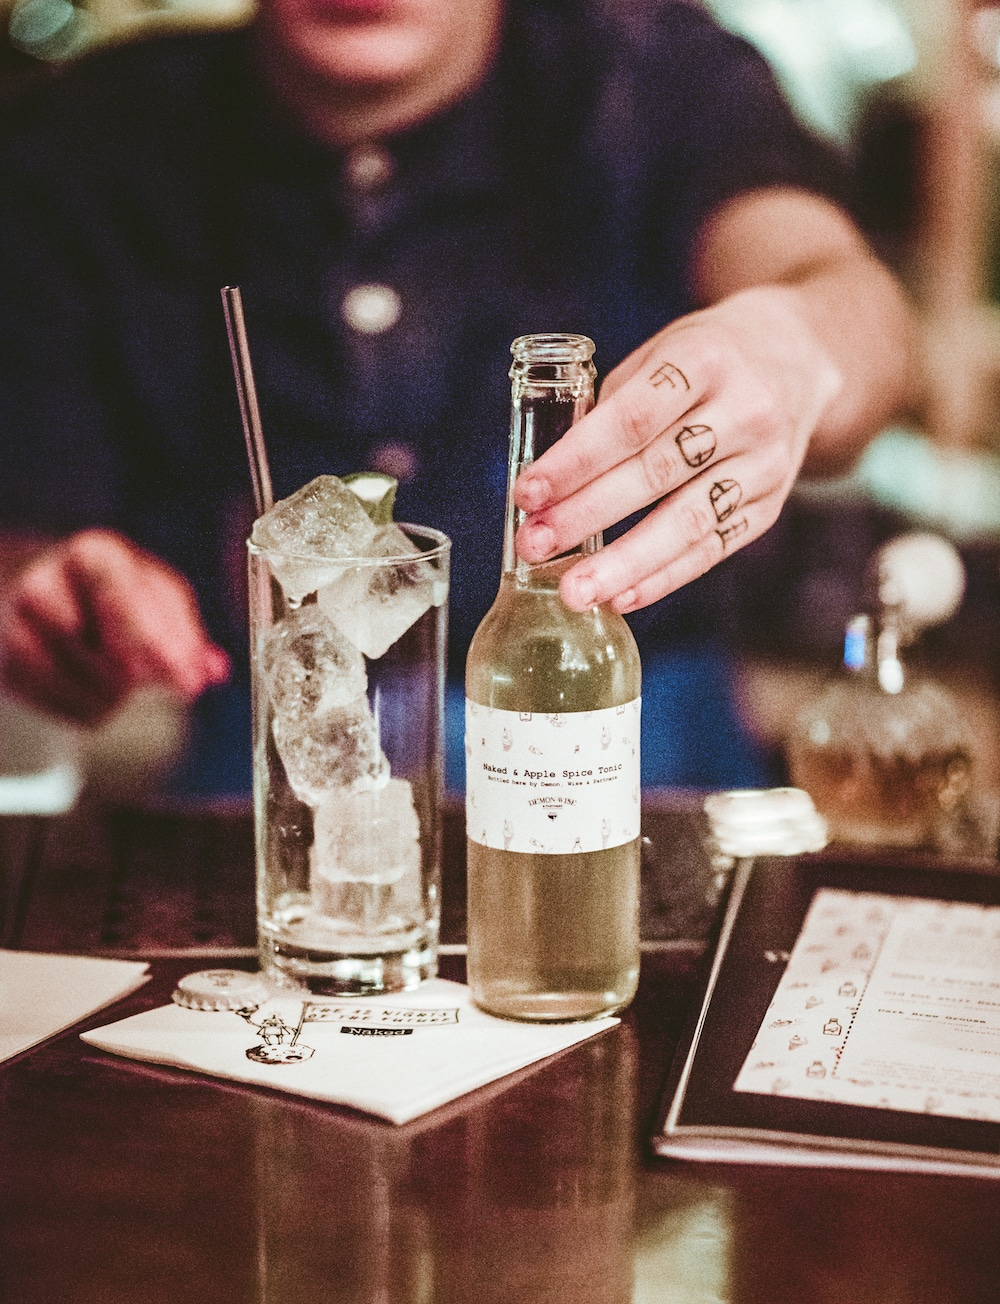 apple-spiced-tonic-naked-grouse